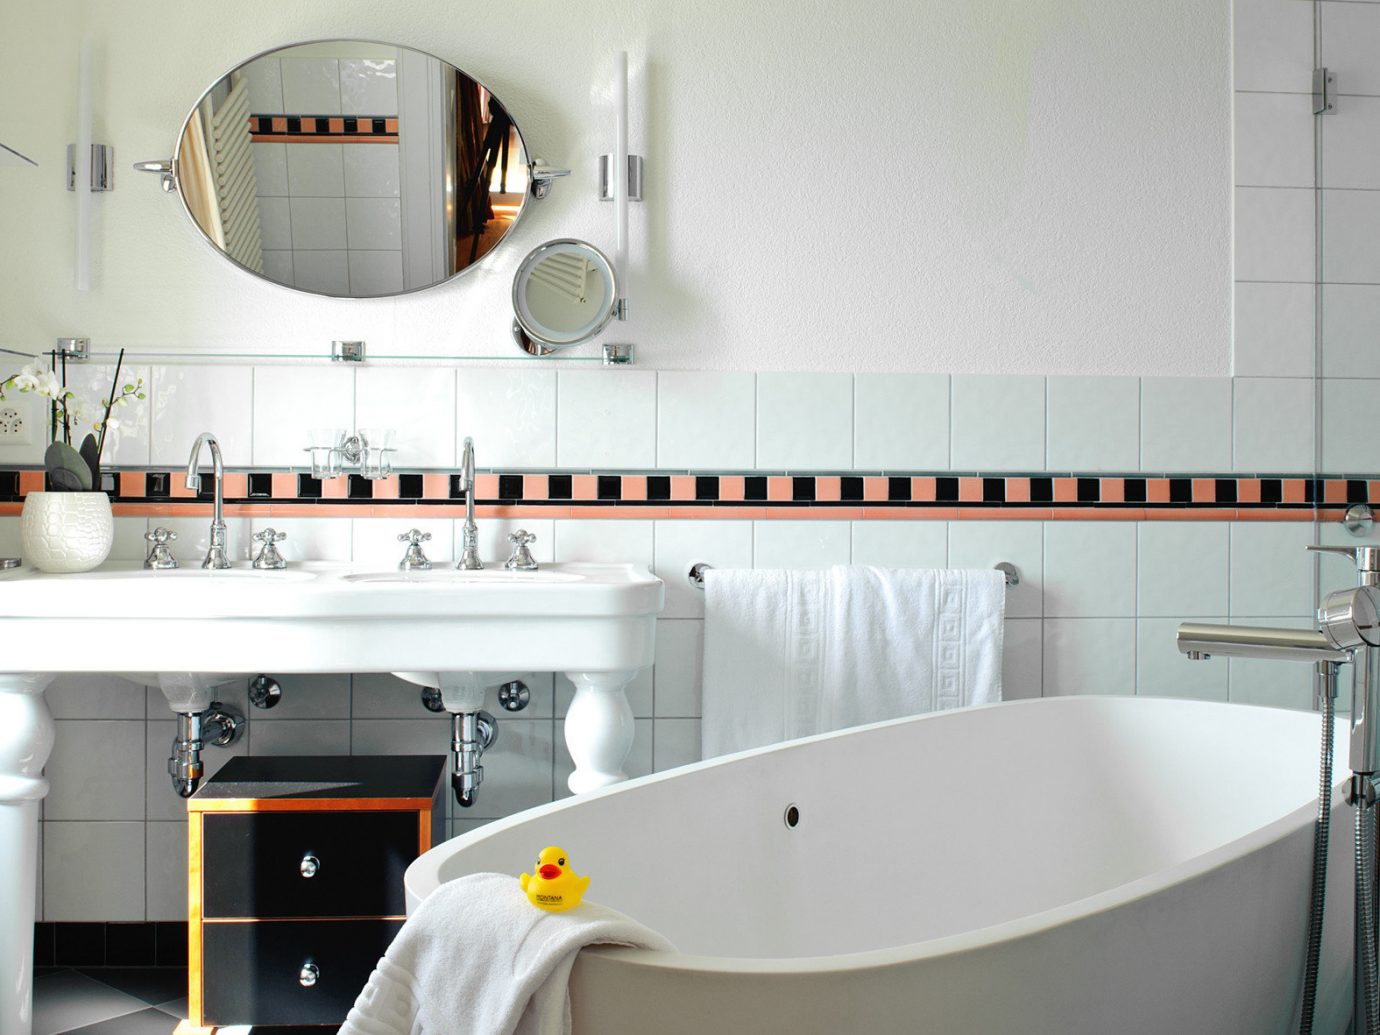 Hotels wall indoor room property bathroom floor home interior design sink Design vessel apartment cottage bathtub tub Bath tiled